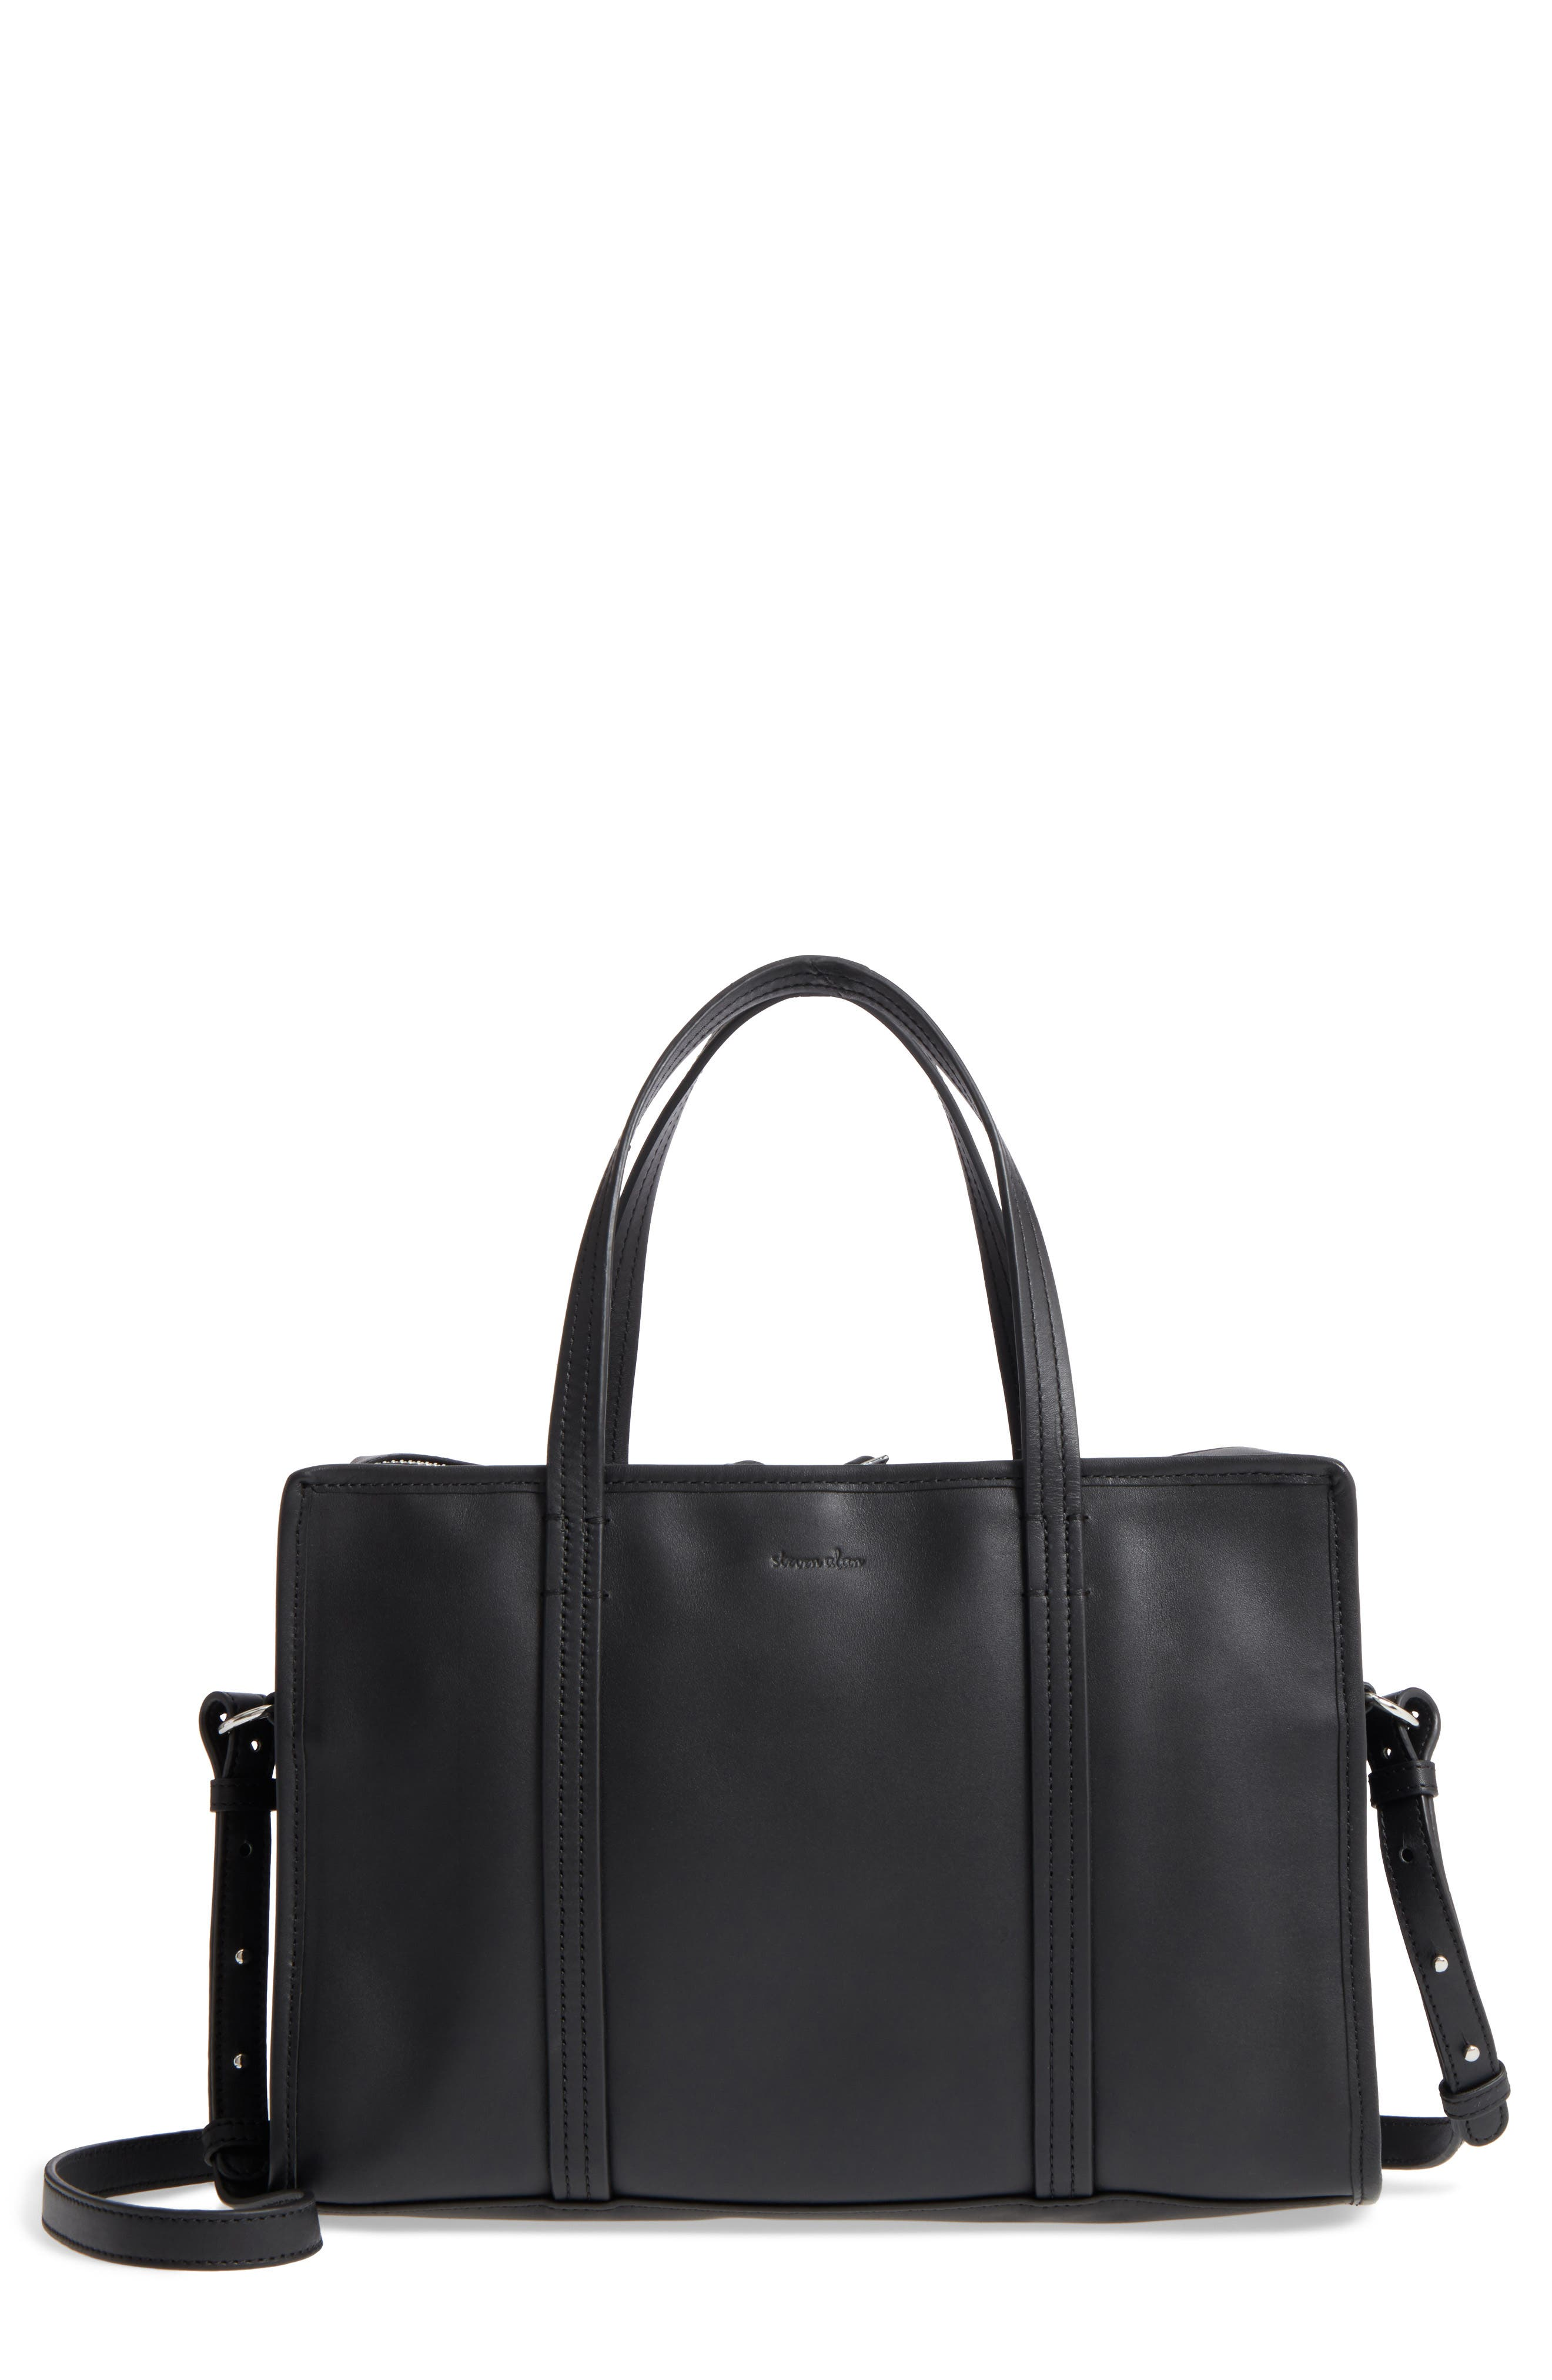 Alternate Image 1 Selected - Steven Alan Large Simone Calfskin Leather Satchel